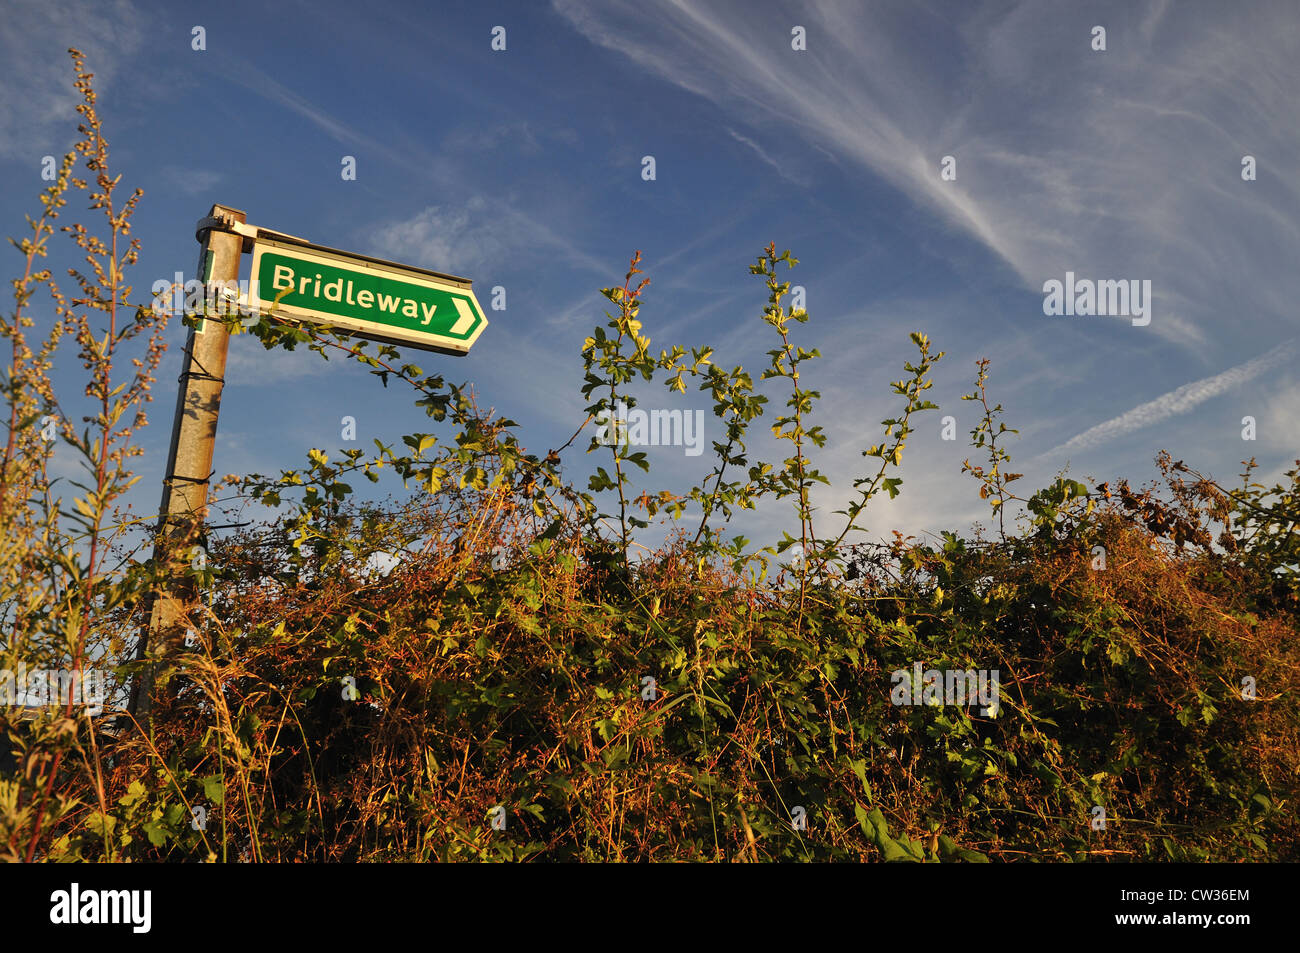 Bridleway sign amongst hedgerows - Stock Image